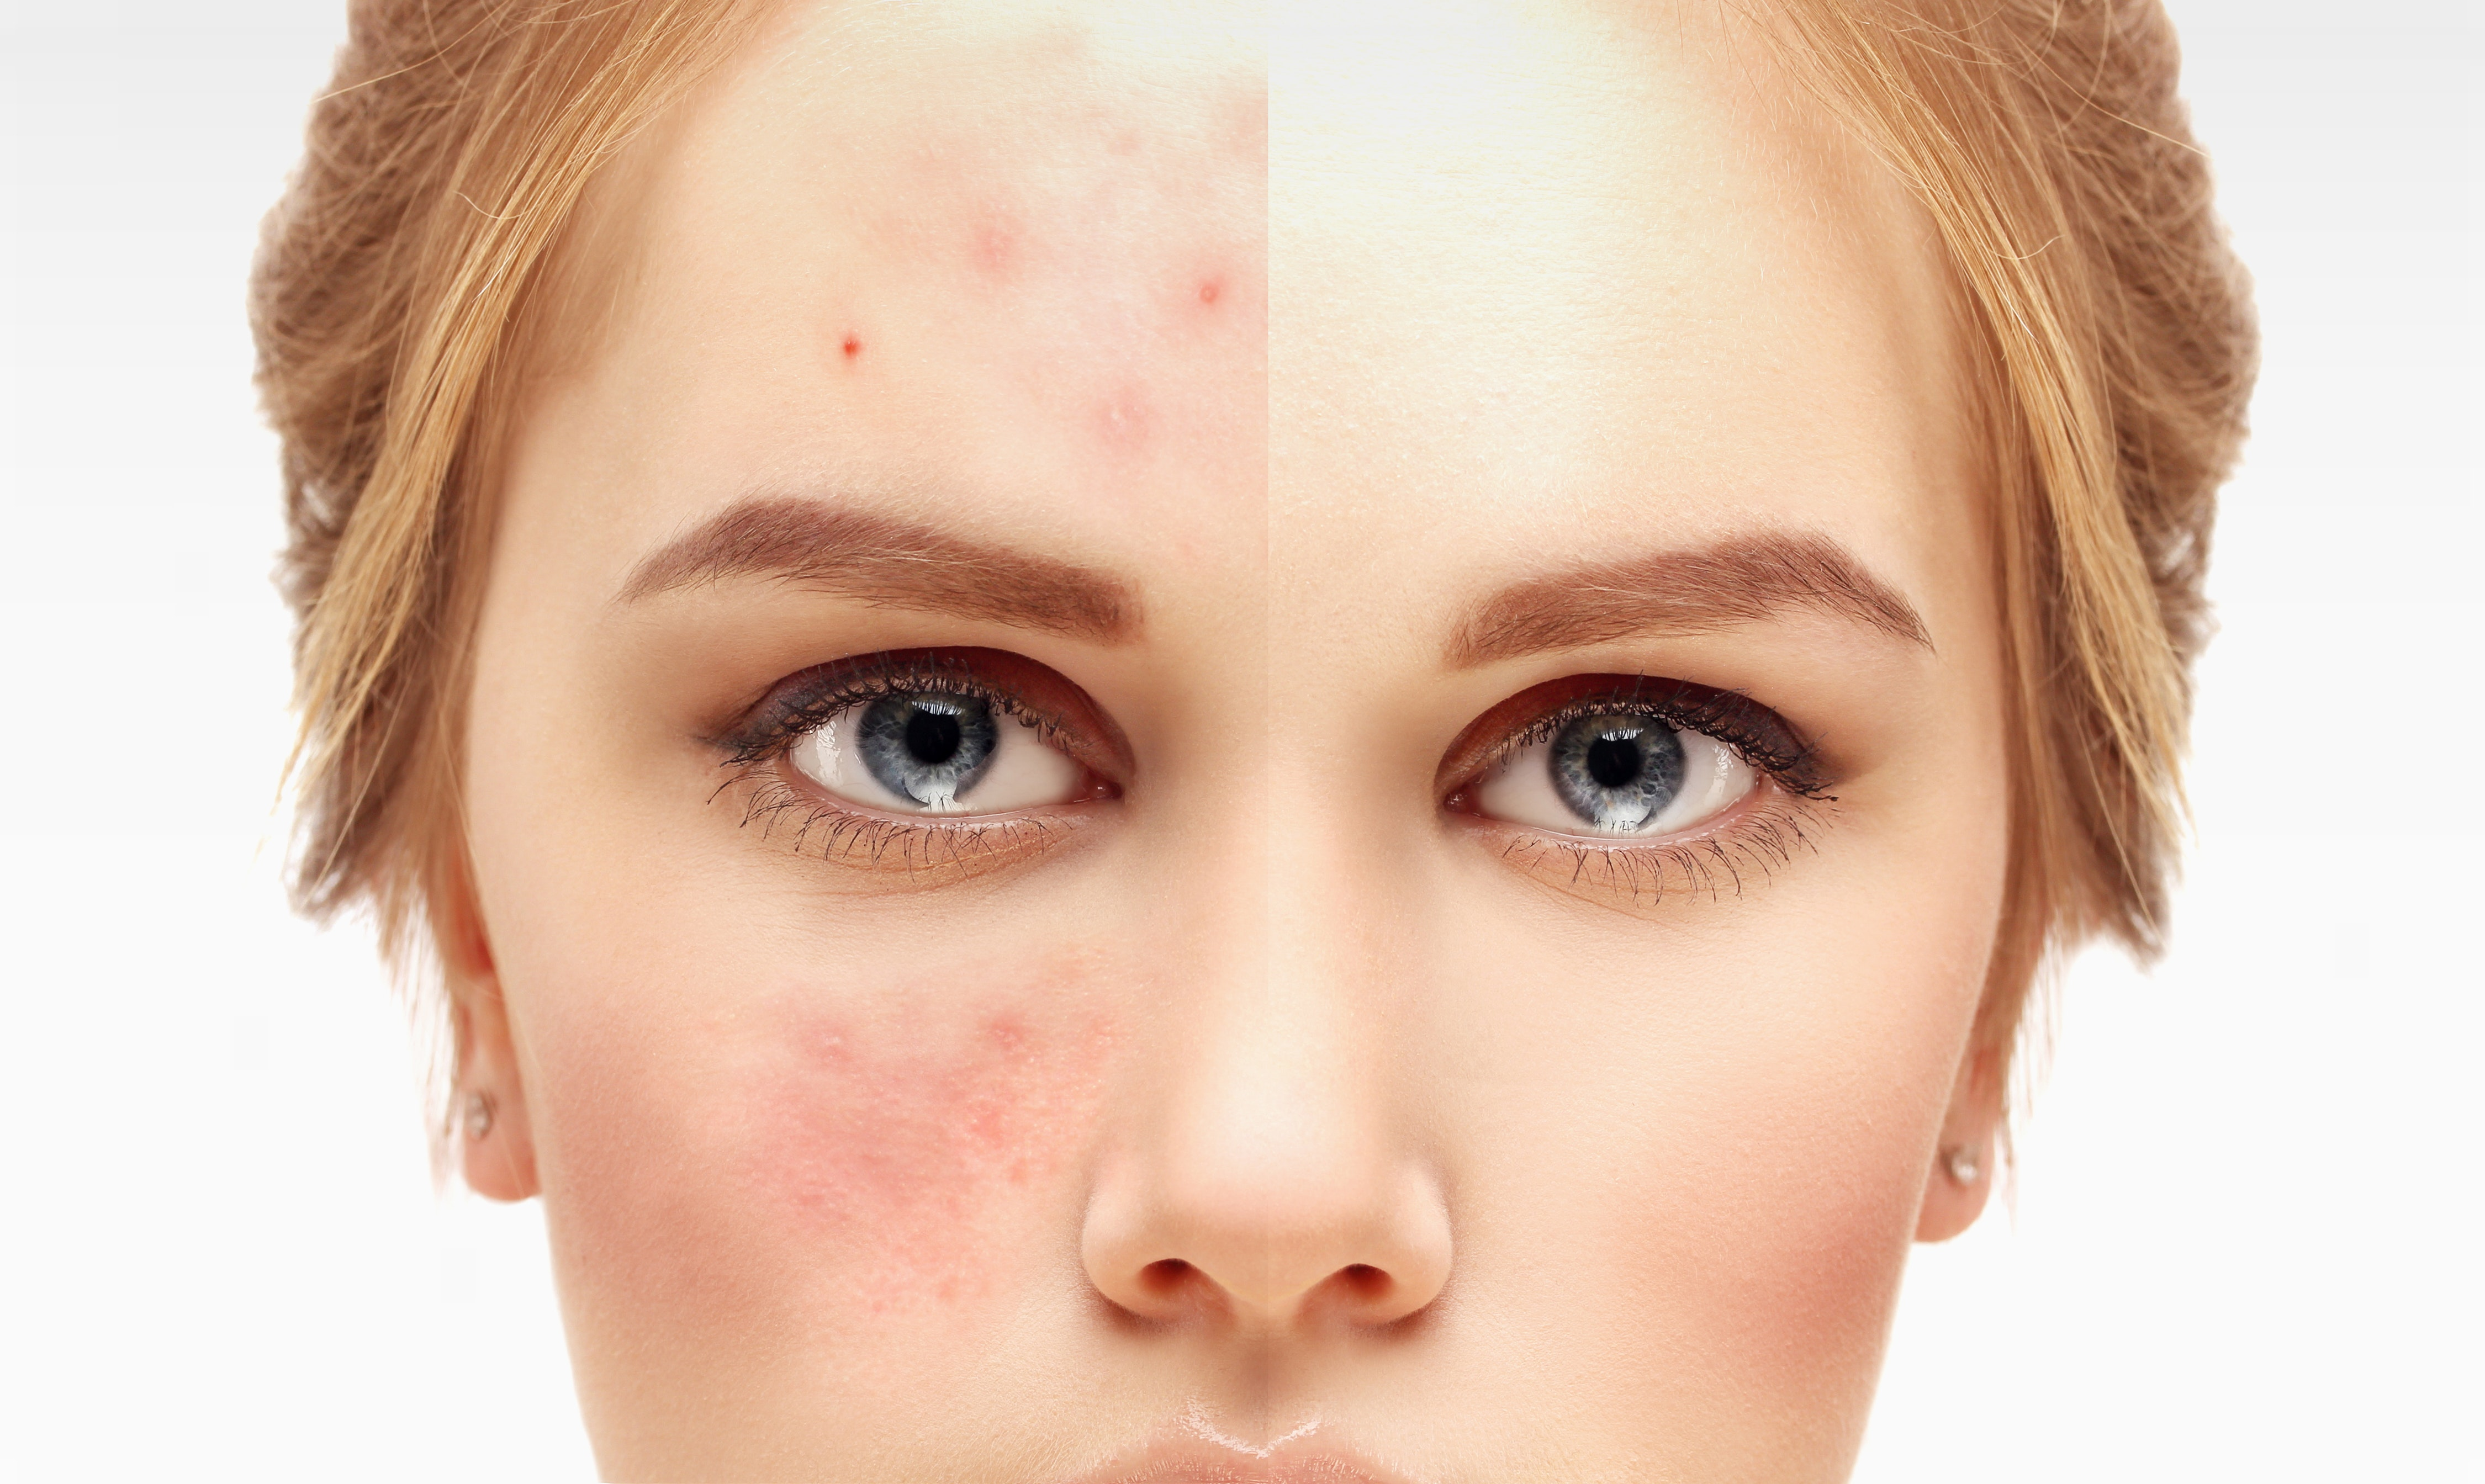 Cure facial acne pic 474